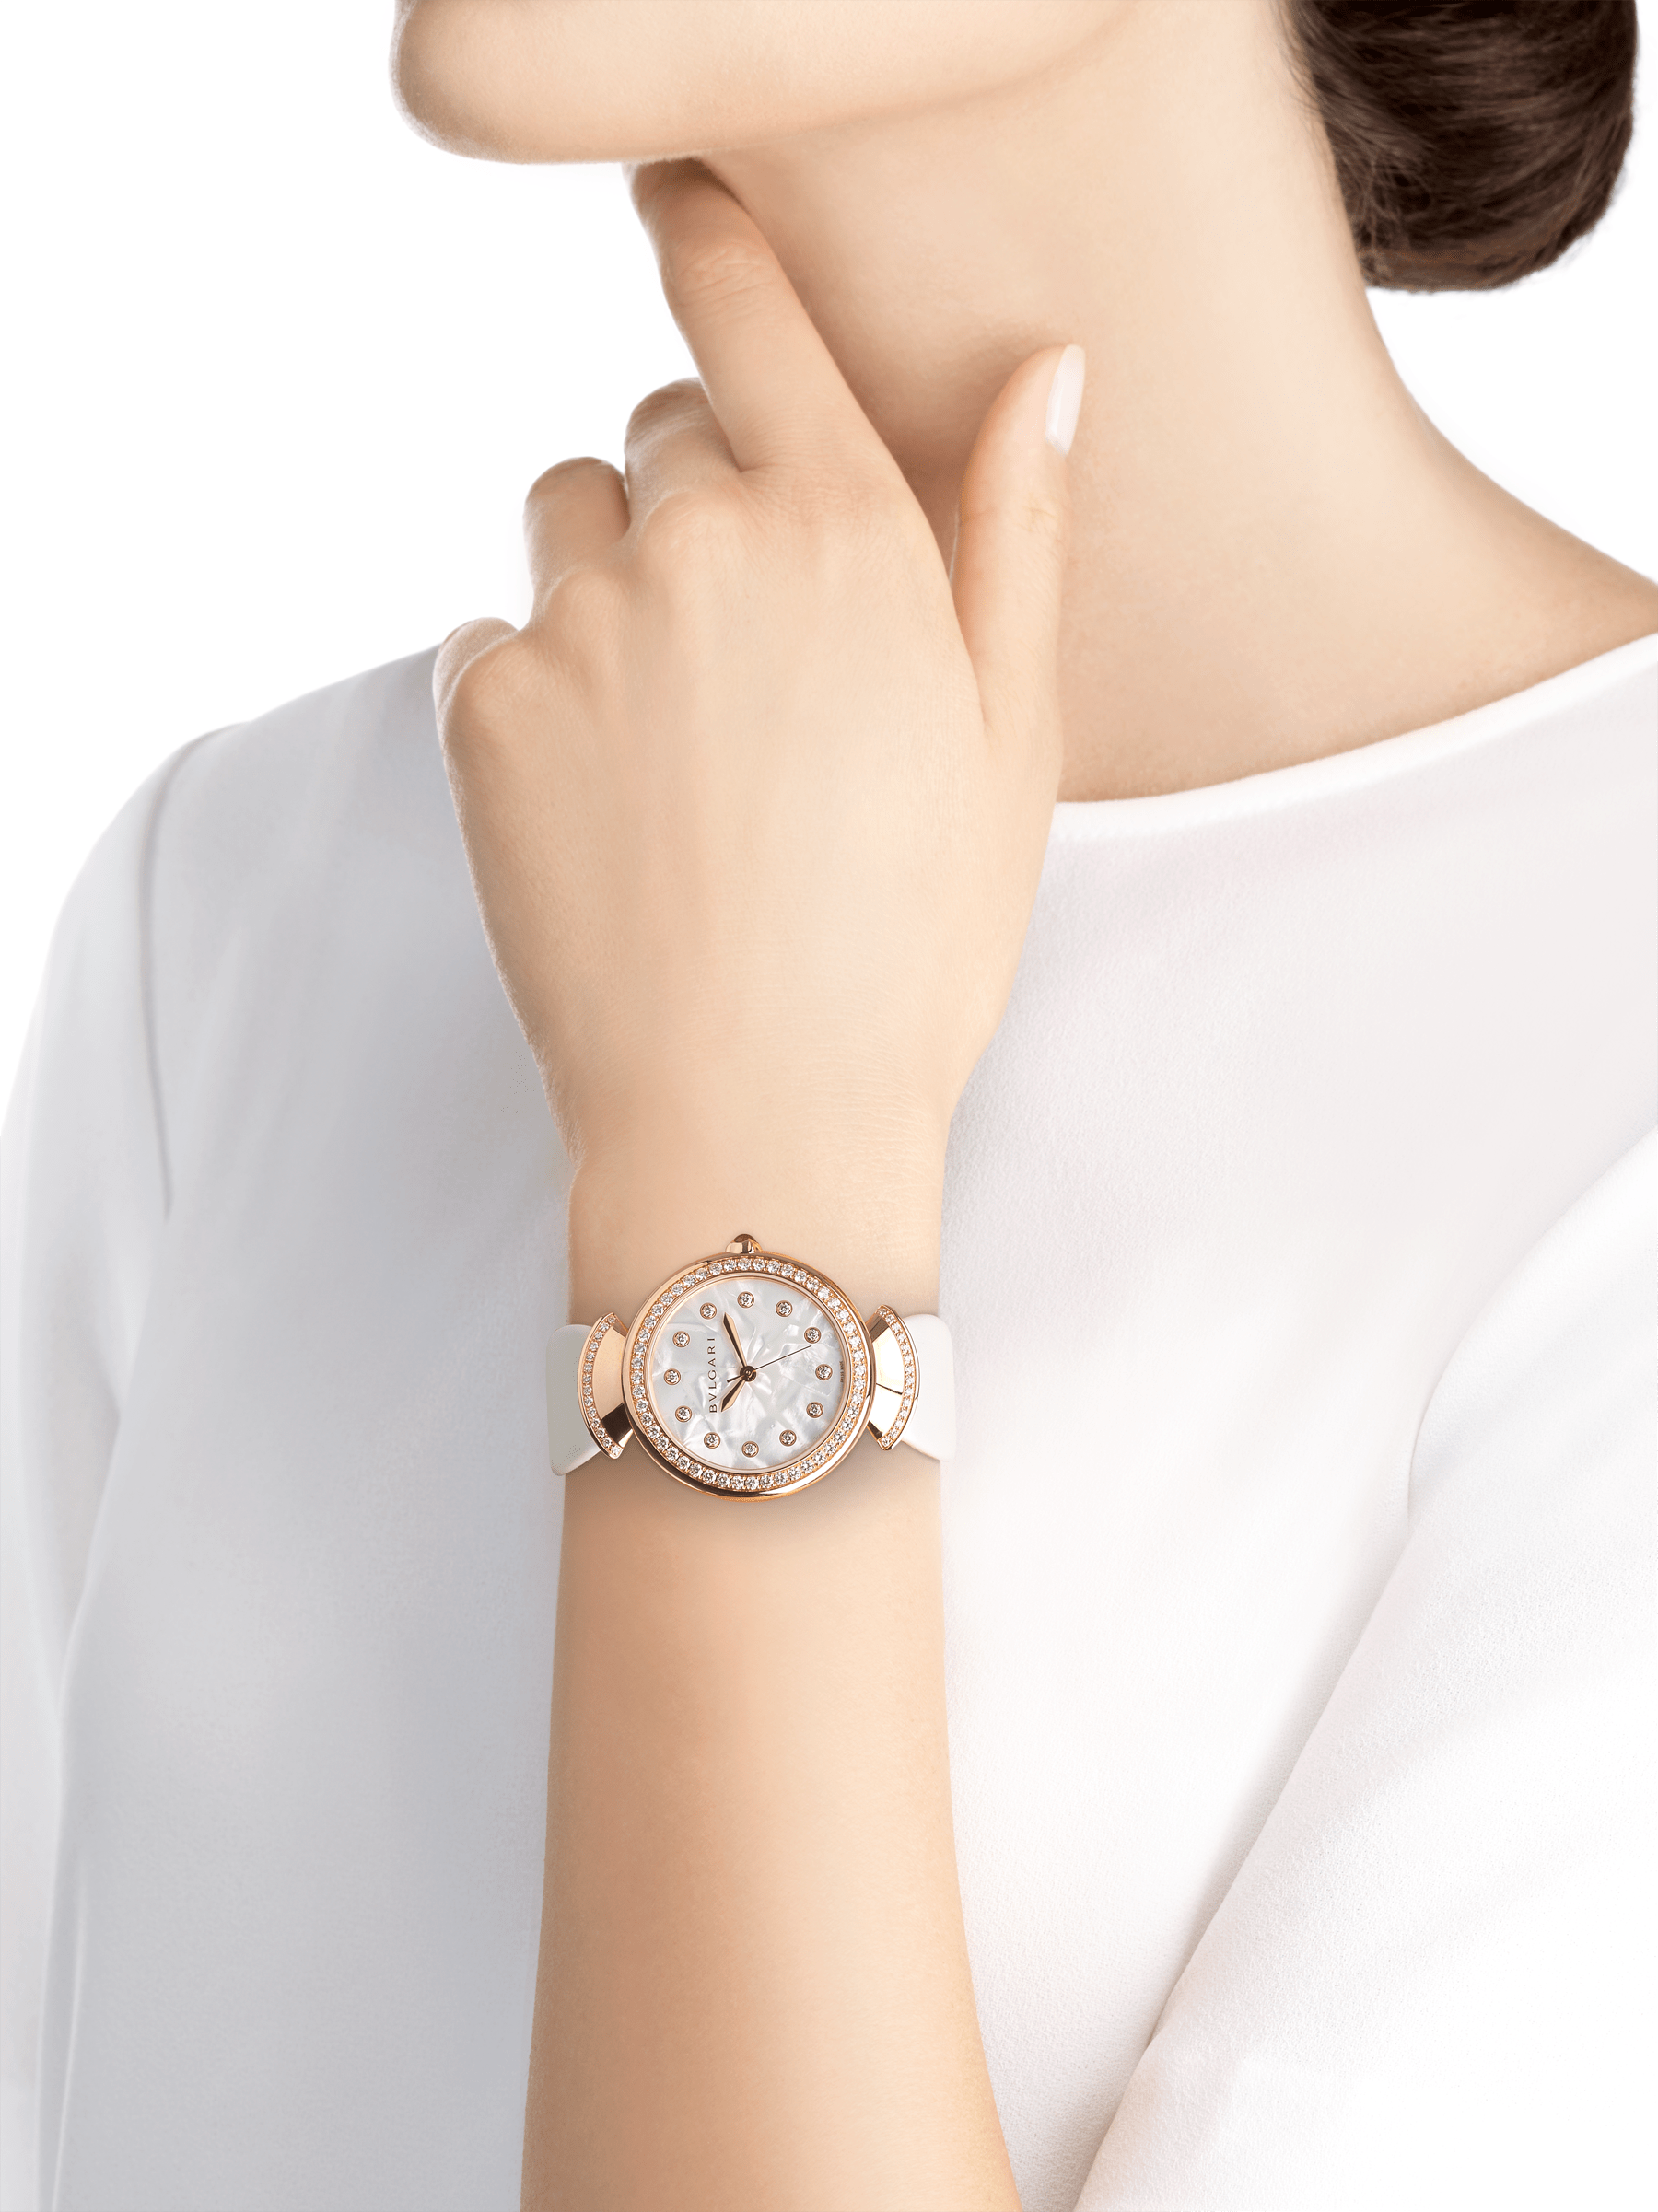 DIVAS' DREAM watch with 18 kt rose gold case set with brilliant-cut diamonds, acetate dial, diamond indexes and white satin bracelet 102575 image 4